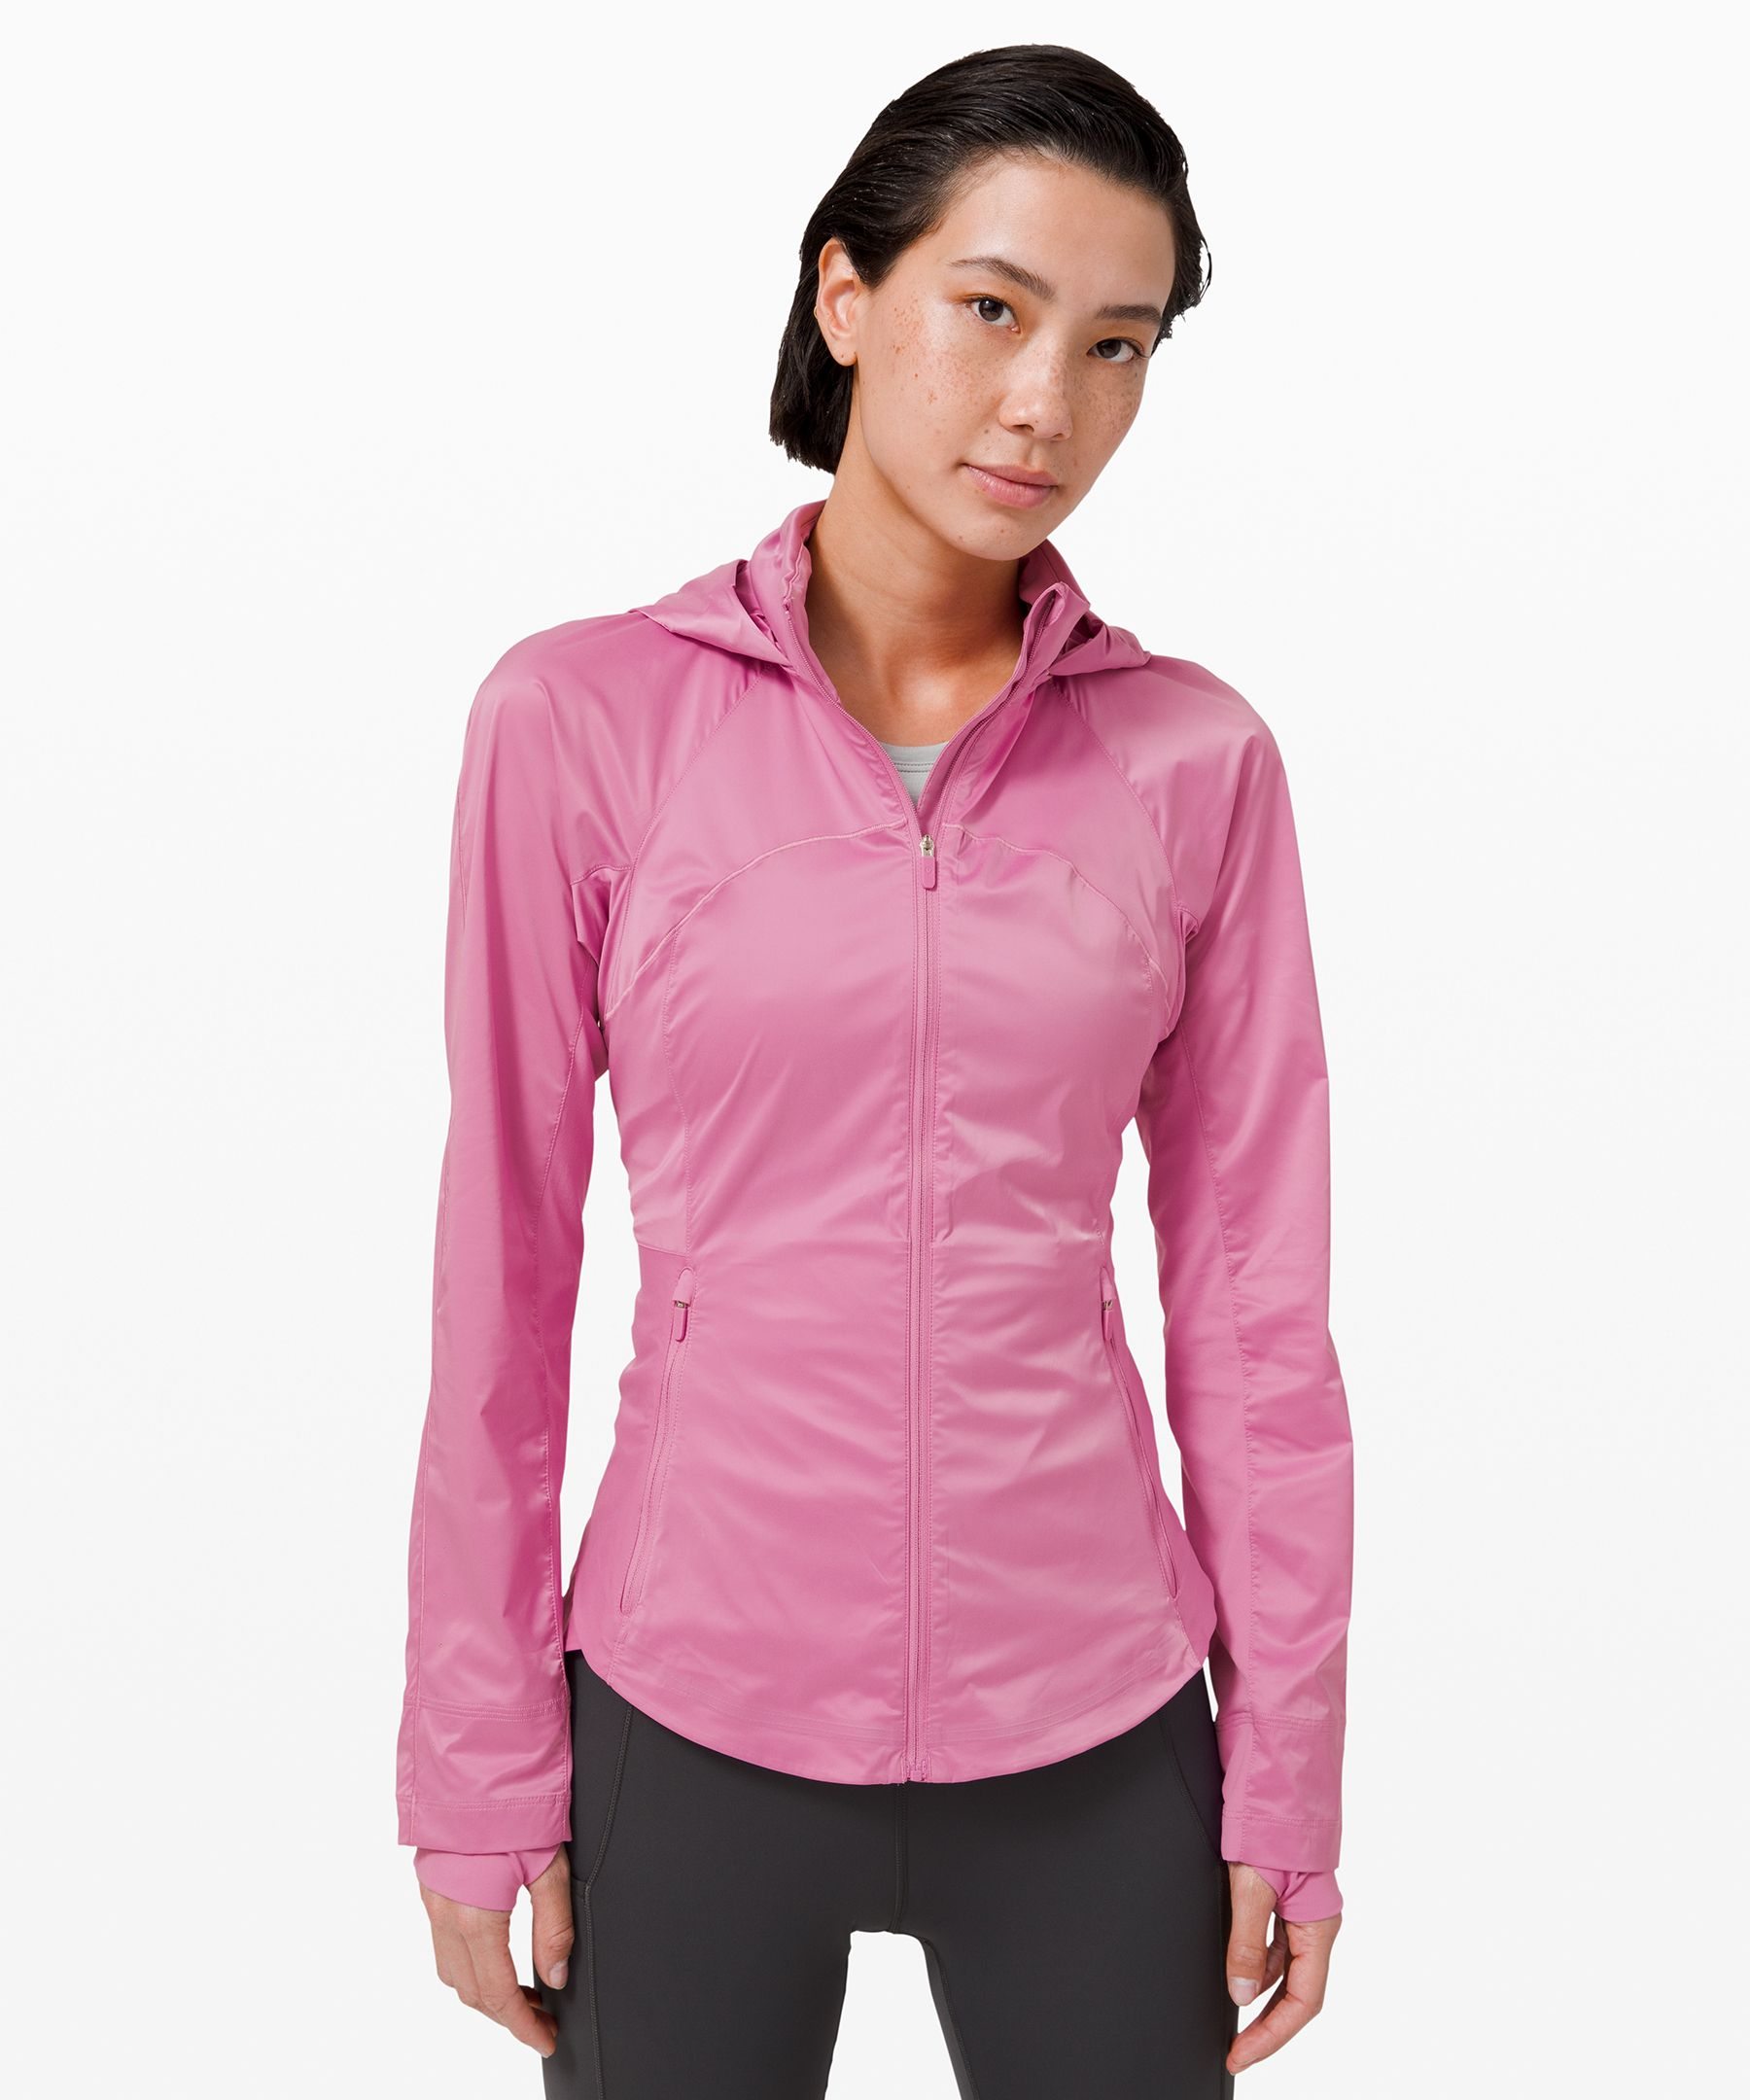 Smash your goals in this  lightweight run jacket. With  stretch panels, plenty of  pockets, and a hood that packs  away when the skies are clear,  it\\\'s made to move with you on  every route.